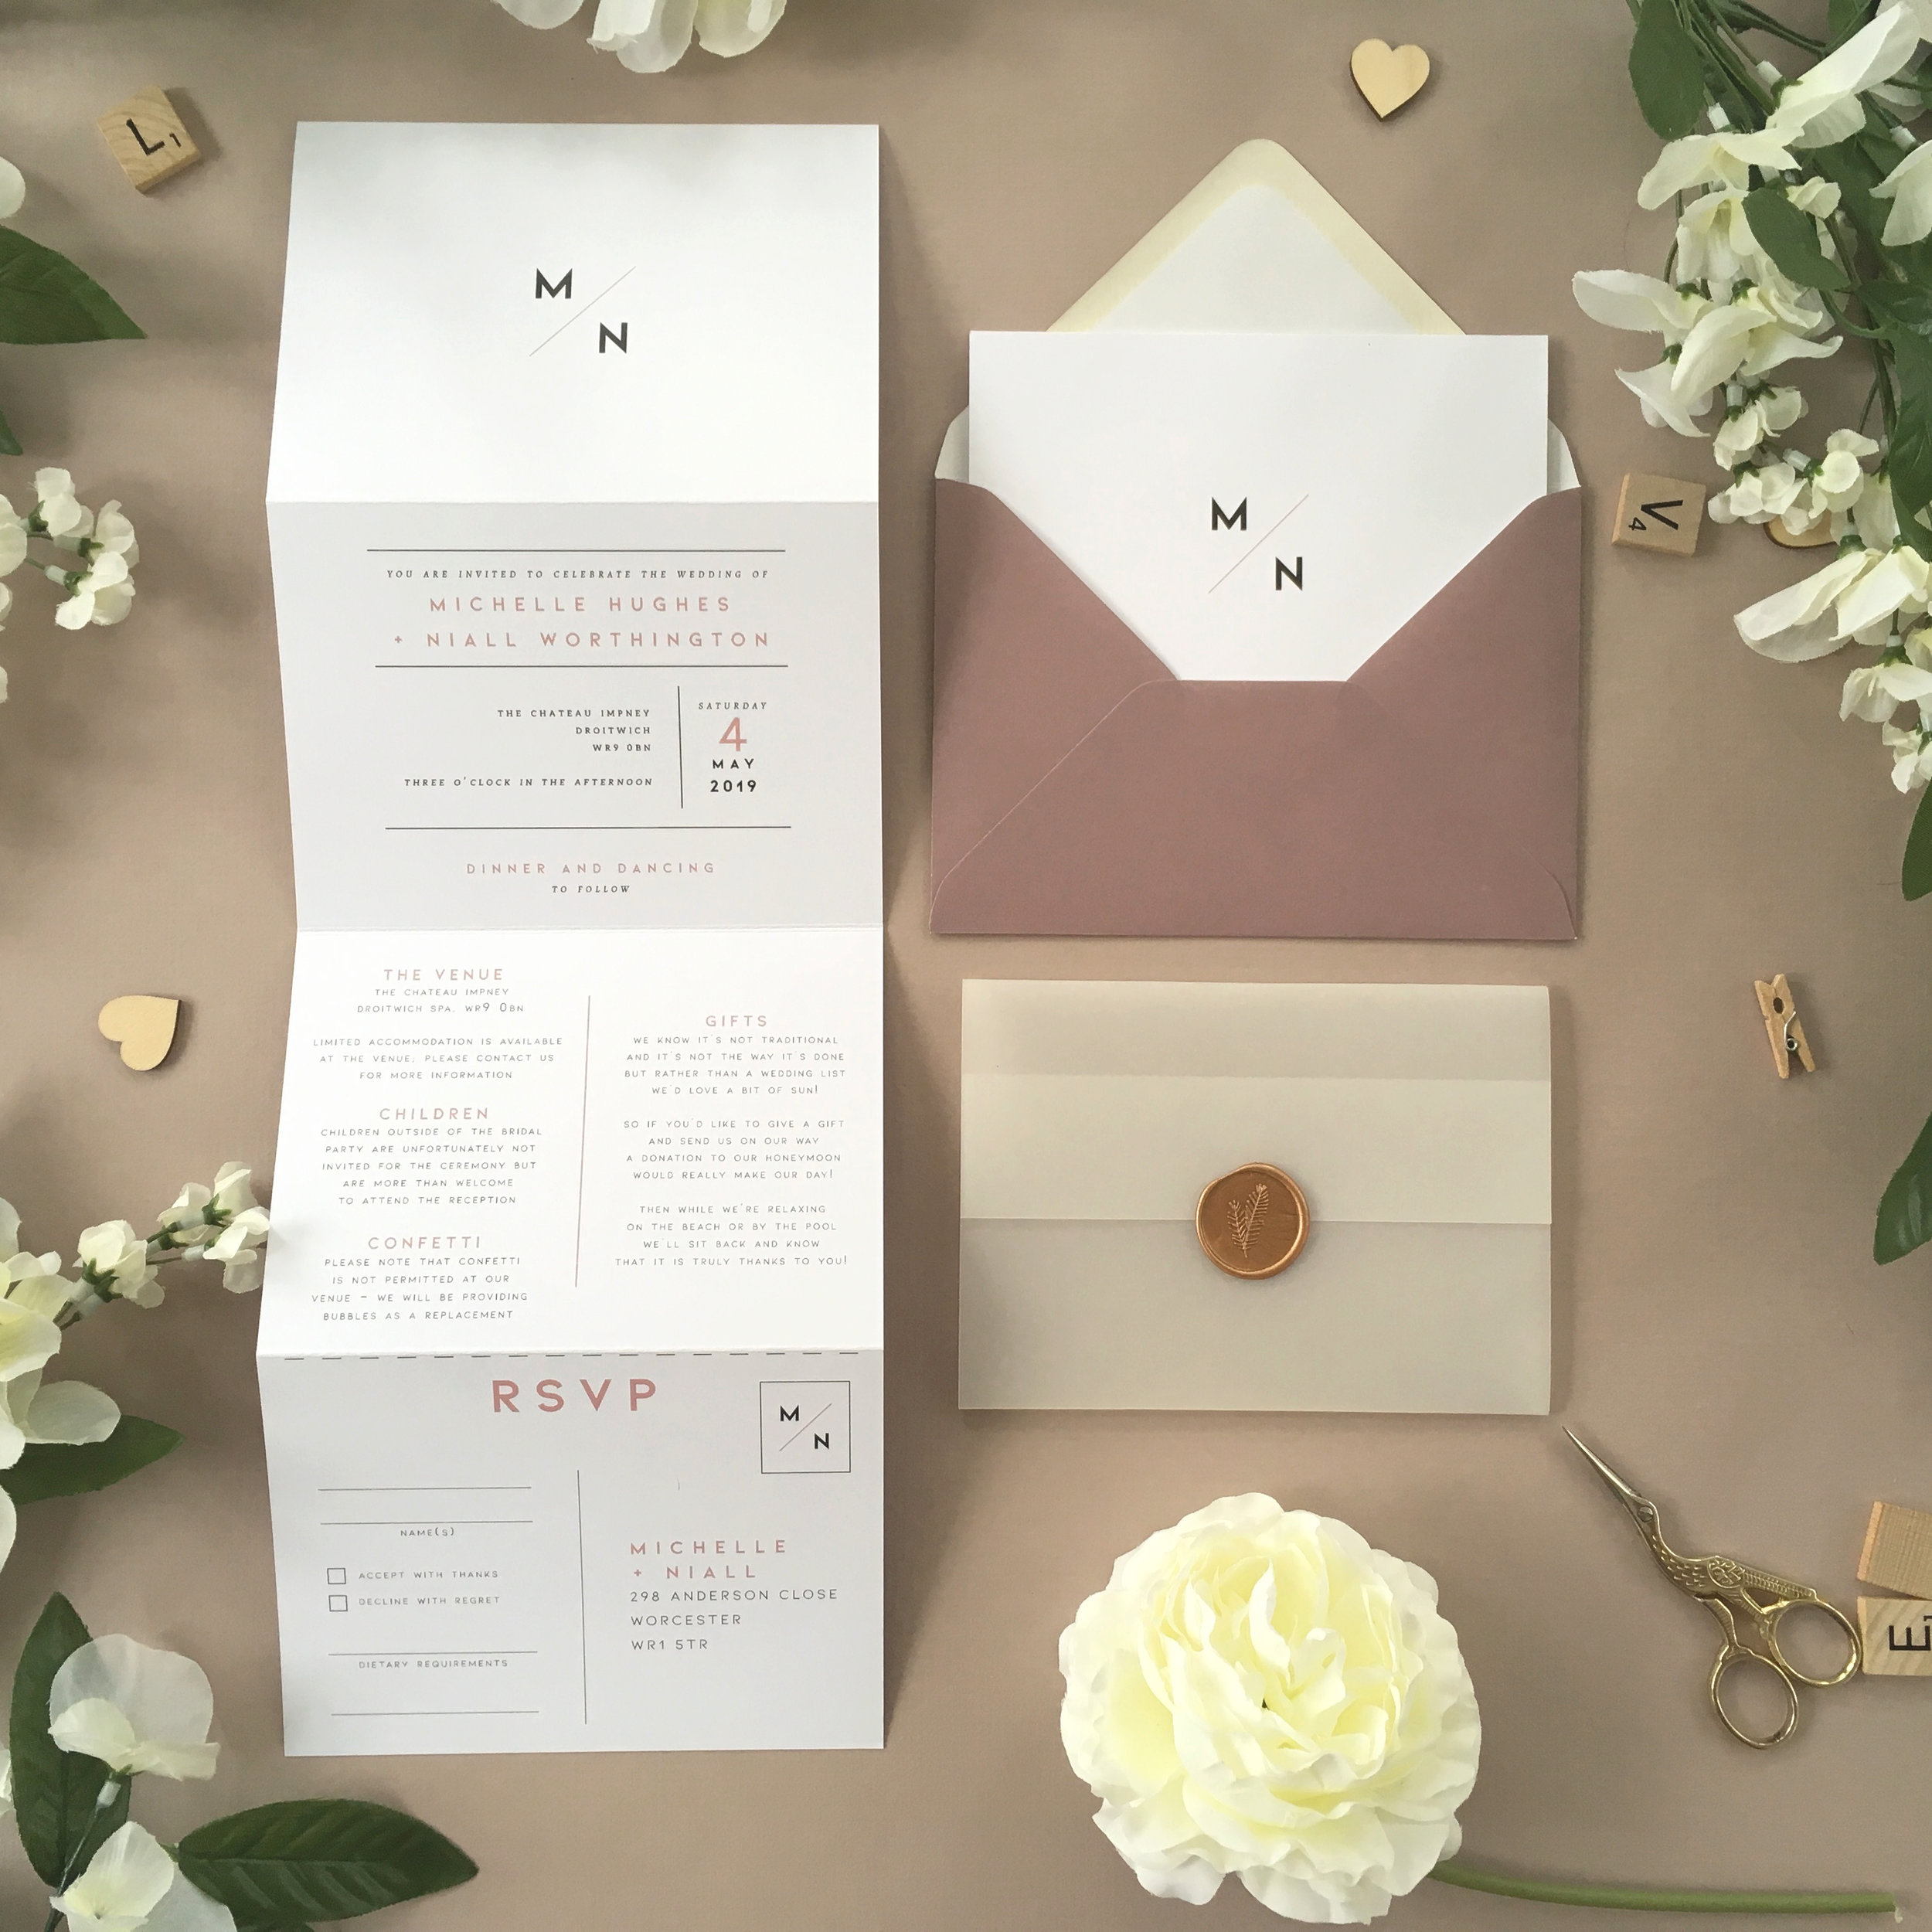 Camden - A striking minimalist design is used for our Camden collection, with bold typography and an insignia bearing the couple's initials.Our concertina invitations are a great all-in-one solution, with a detachable RSVP at the bottom of the invitation - all guests need to do is fill in their details, put a stamp in the corner and post!Concertina invitations can be provided on an as-is basis, or can be provided bound with a vellum jacket and timeless wax seal, or tied with ribbon or twine for a lovely hand-finished approach.- Concertina Invitation - from £1.95- Ribbon or Twine - £0.40- Vellum Jacket - £0.40- Wax Seal - £0.85 (Custom engraving also available)White envelope provided as standard with coloured upgrade available.